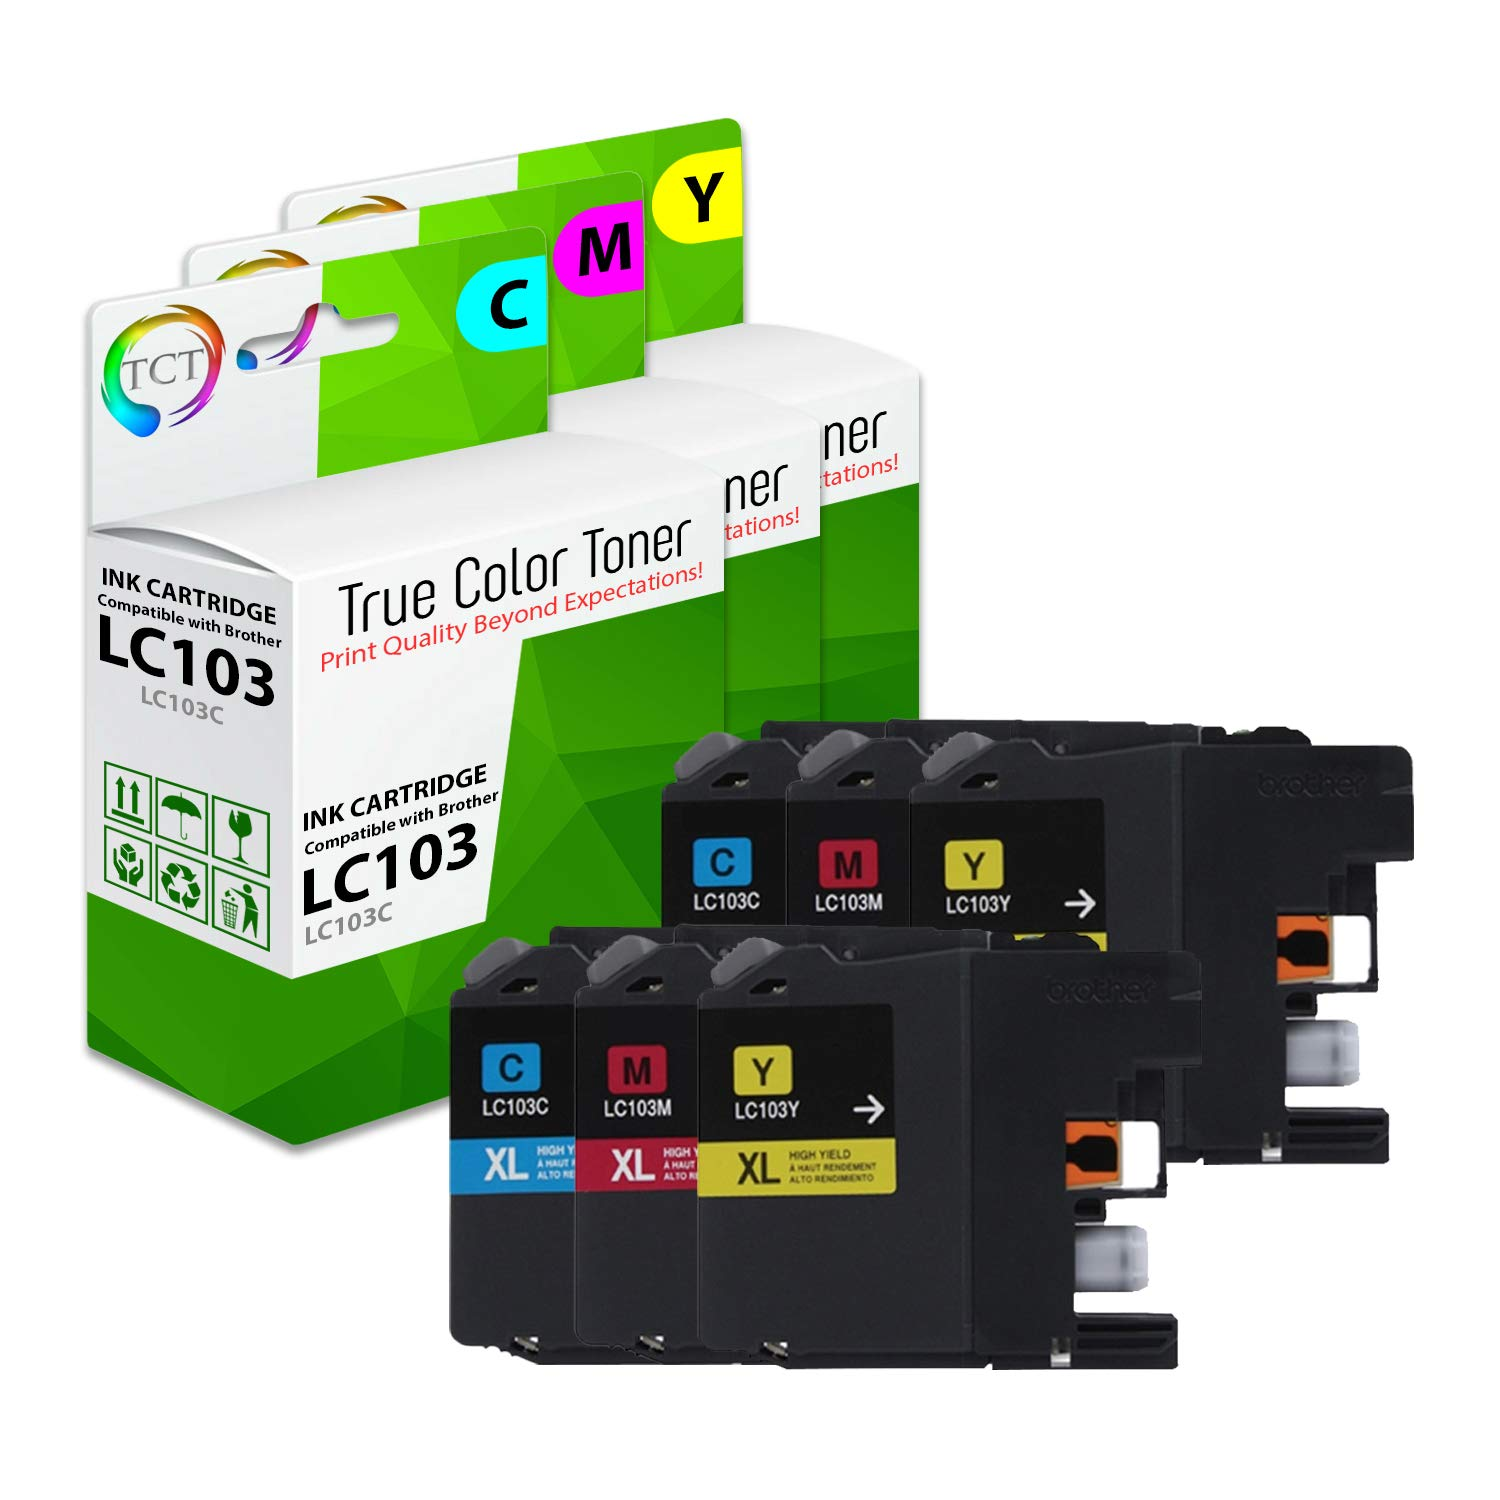 TCT Compatible Ink Cartridge Replacement for Brother LC103 LC103C LC103M LC103Y Works with Brother MFC-J470DW J475DW J6920DW J285DW J870DW Printers (Cyan, Magenta, Yellow) - 6 Pack